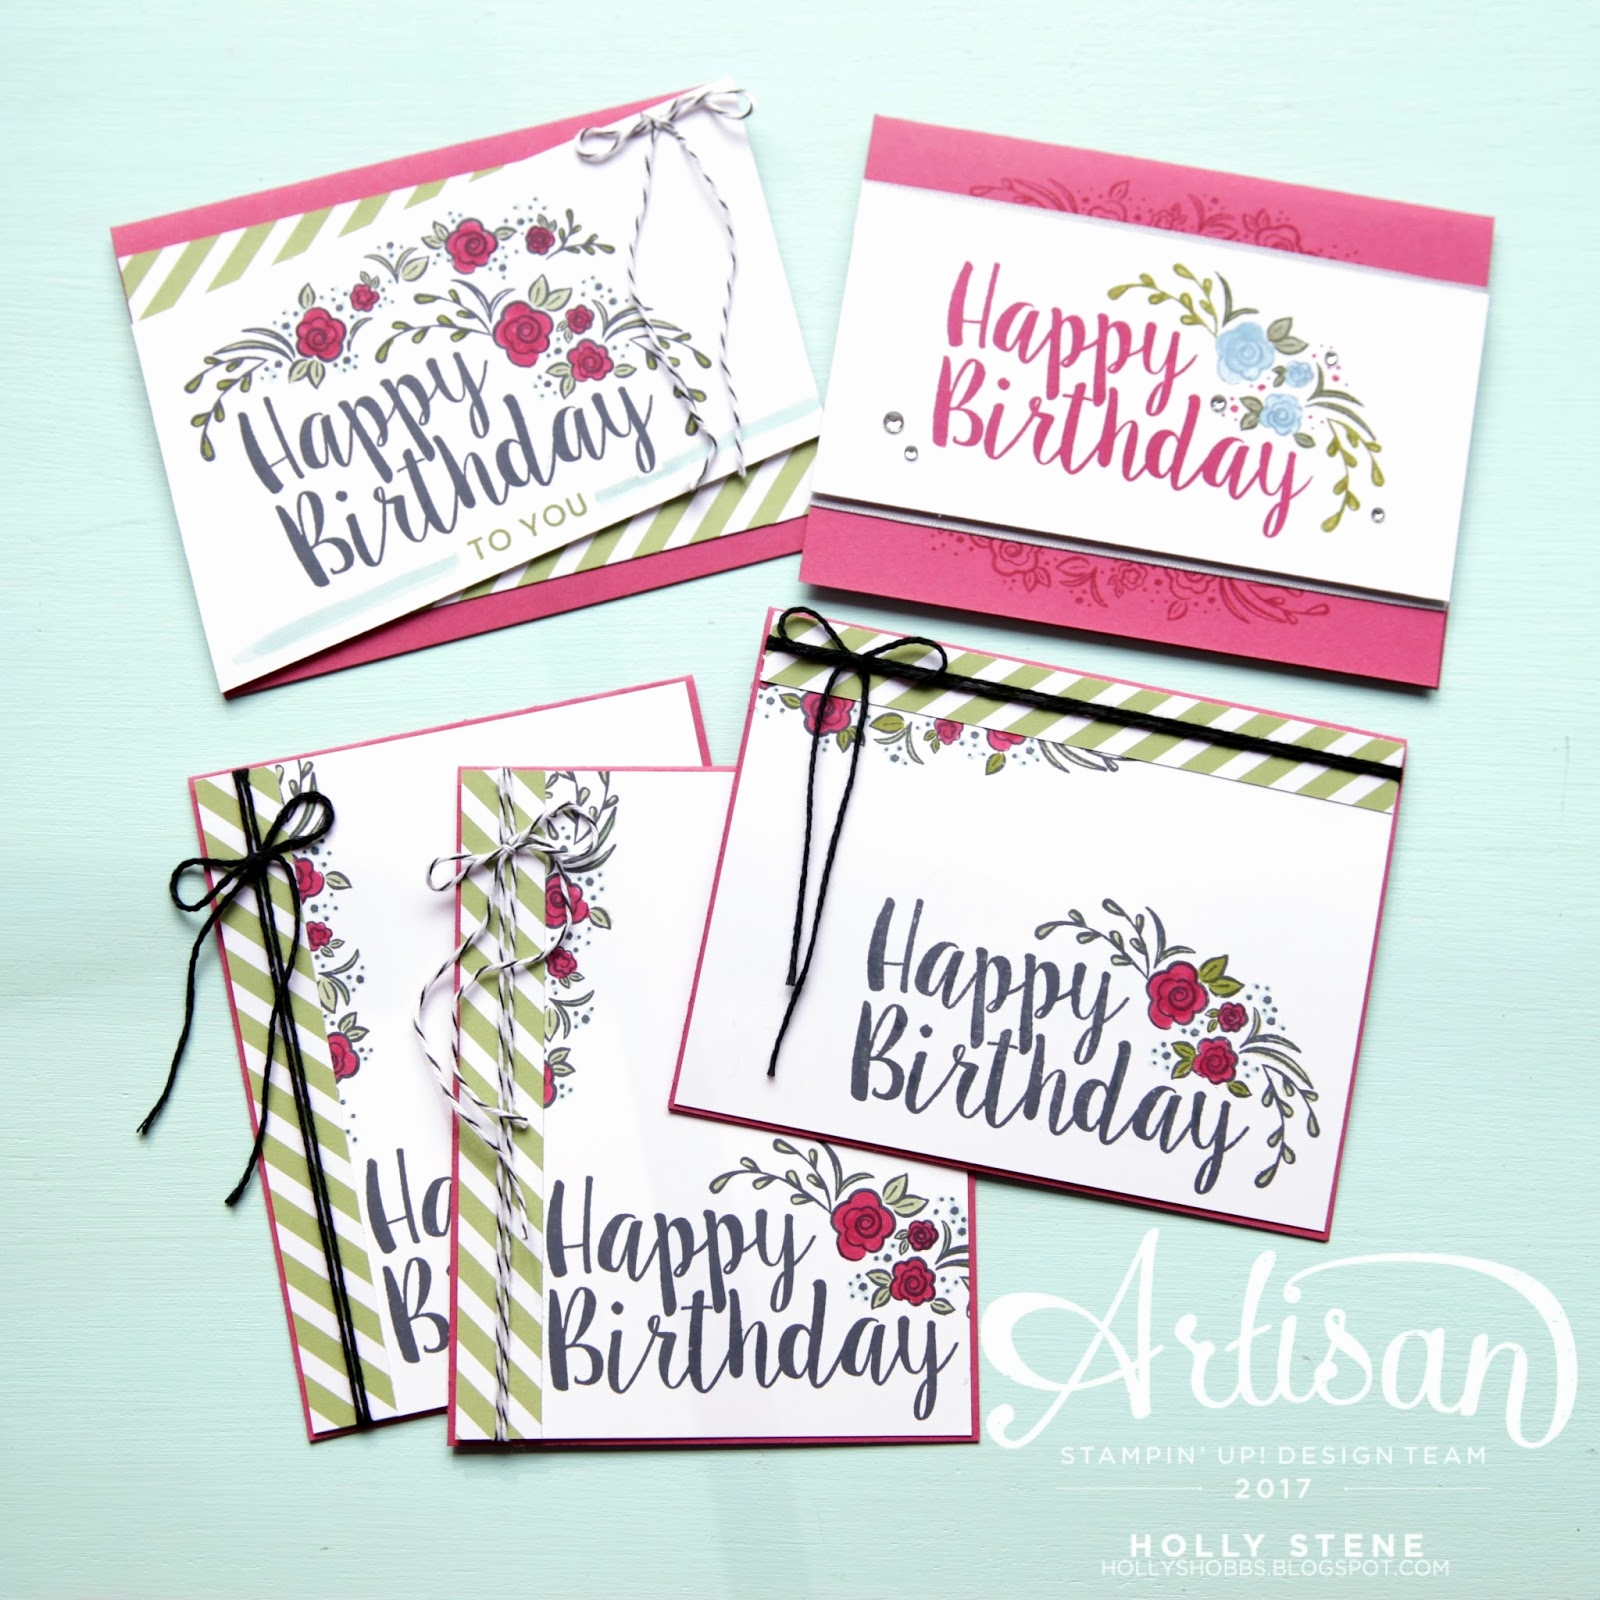 december birthday card ideas ; quirky-birthday-cards-inspirational-holly-s-hobbies-december-birthday-hop-my-favorite-birthday-cards-of-quirky-birthday-cards